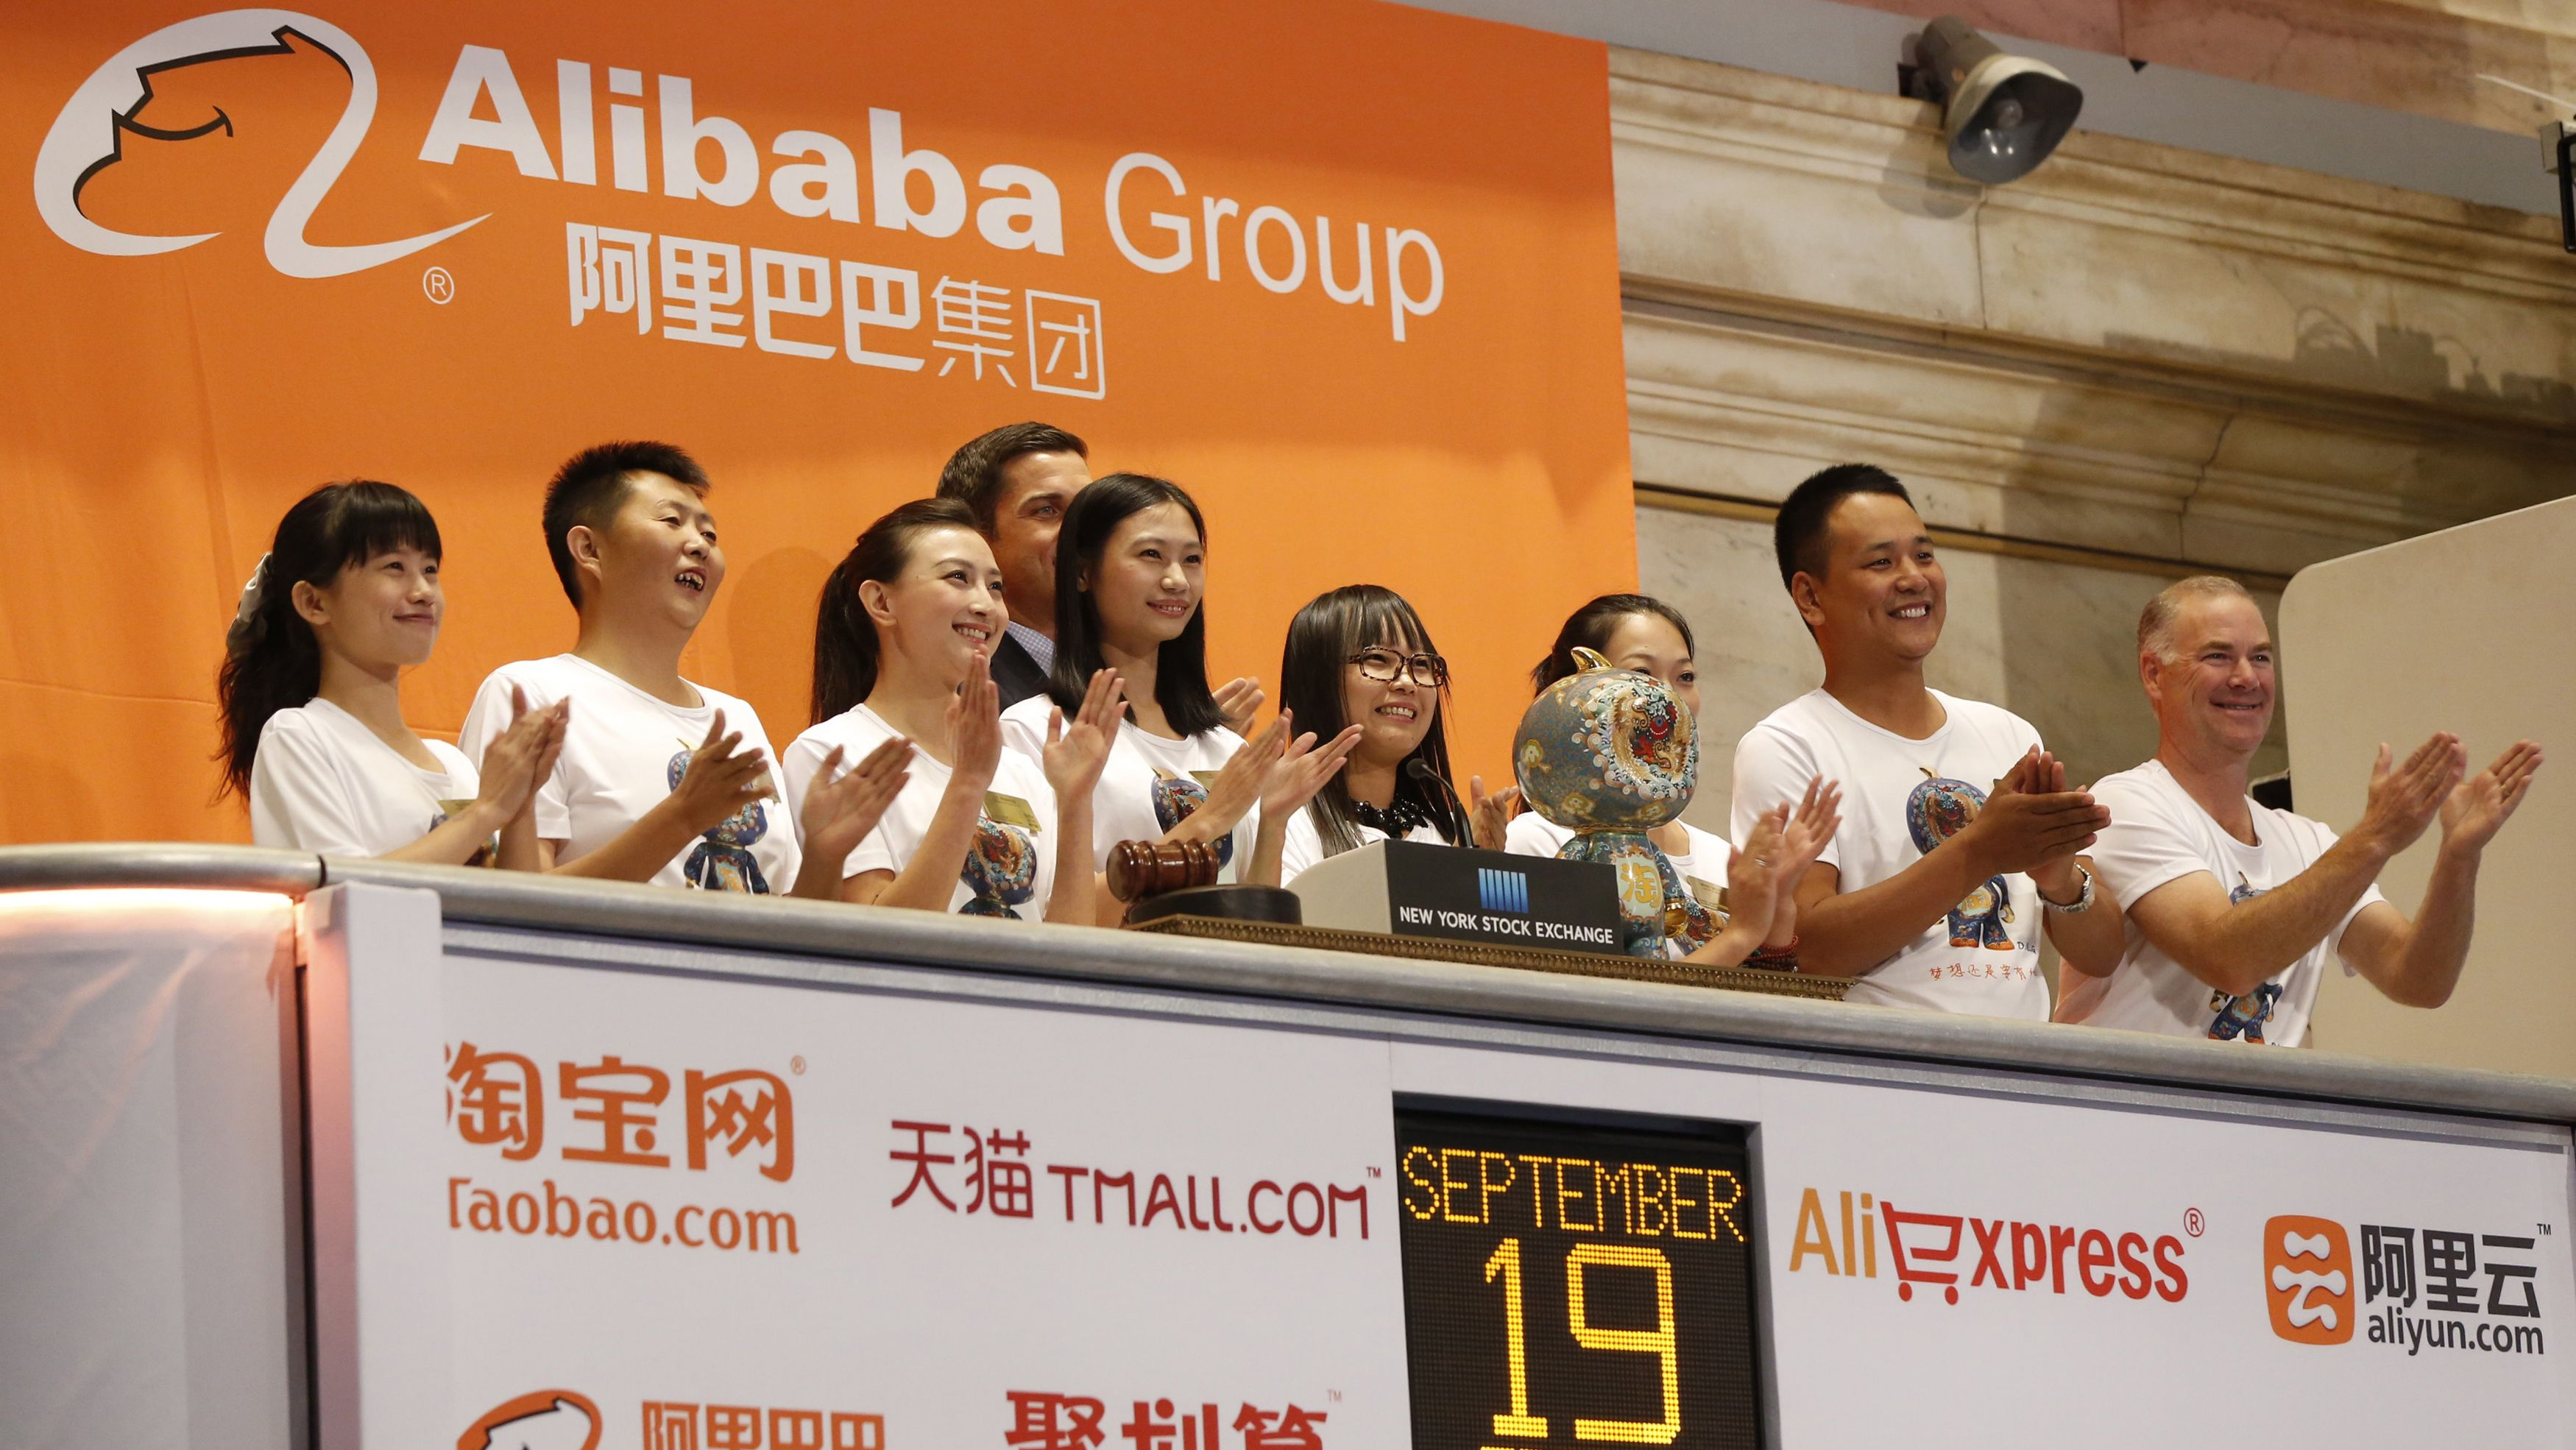 """Alibaba employees applaud as the opening bell of the New York Stock Exchange is rung, before the initial public offering (IPO) of Alibaba Group Holding Ltd under the ticker """"BABA"""" in New York September 19, 2014. REUTERS/Lucas Jackson"""